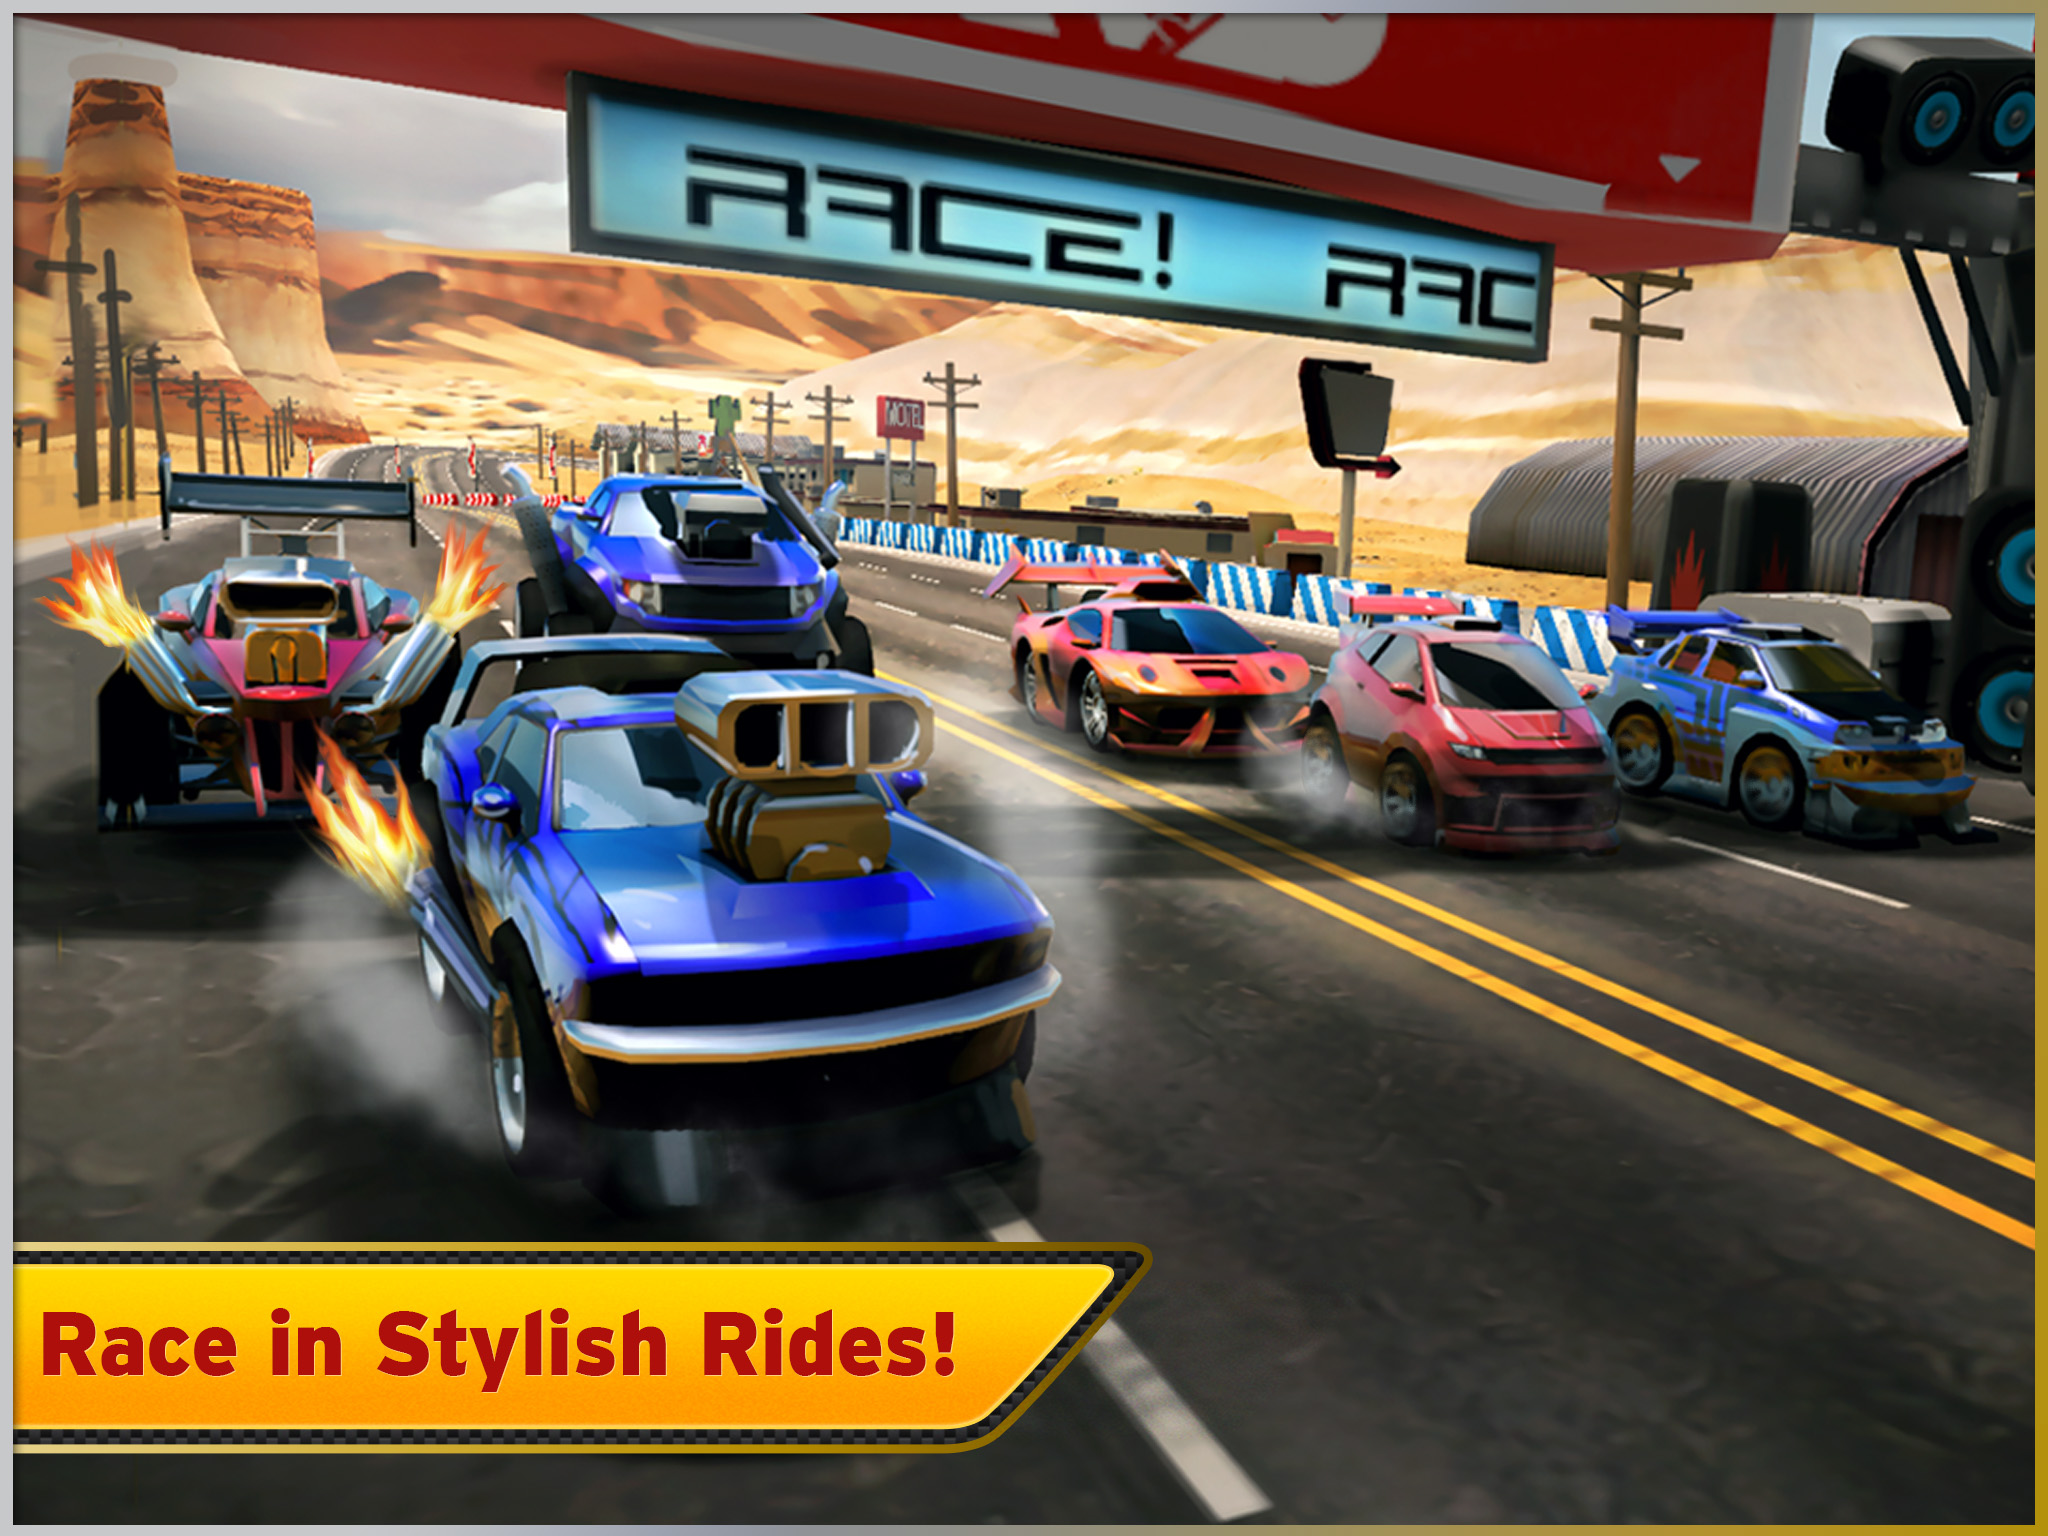 Z2 chases car racing fans with new iOS game Nitro – GeekWire